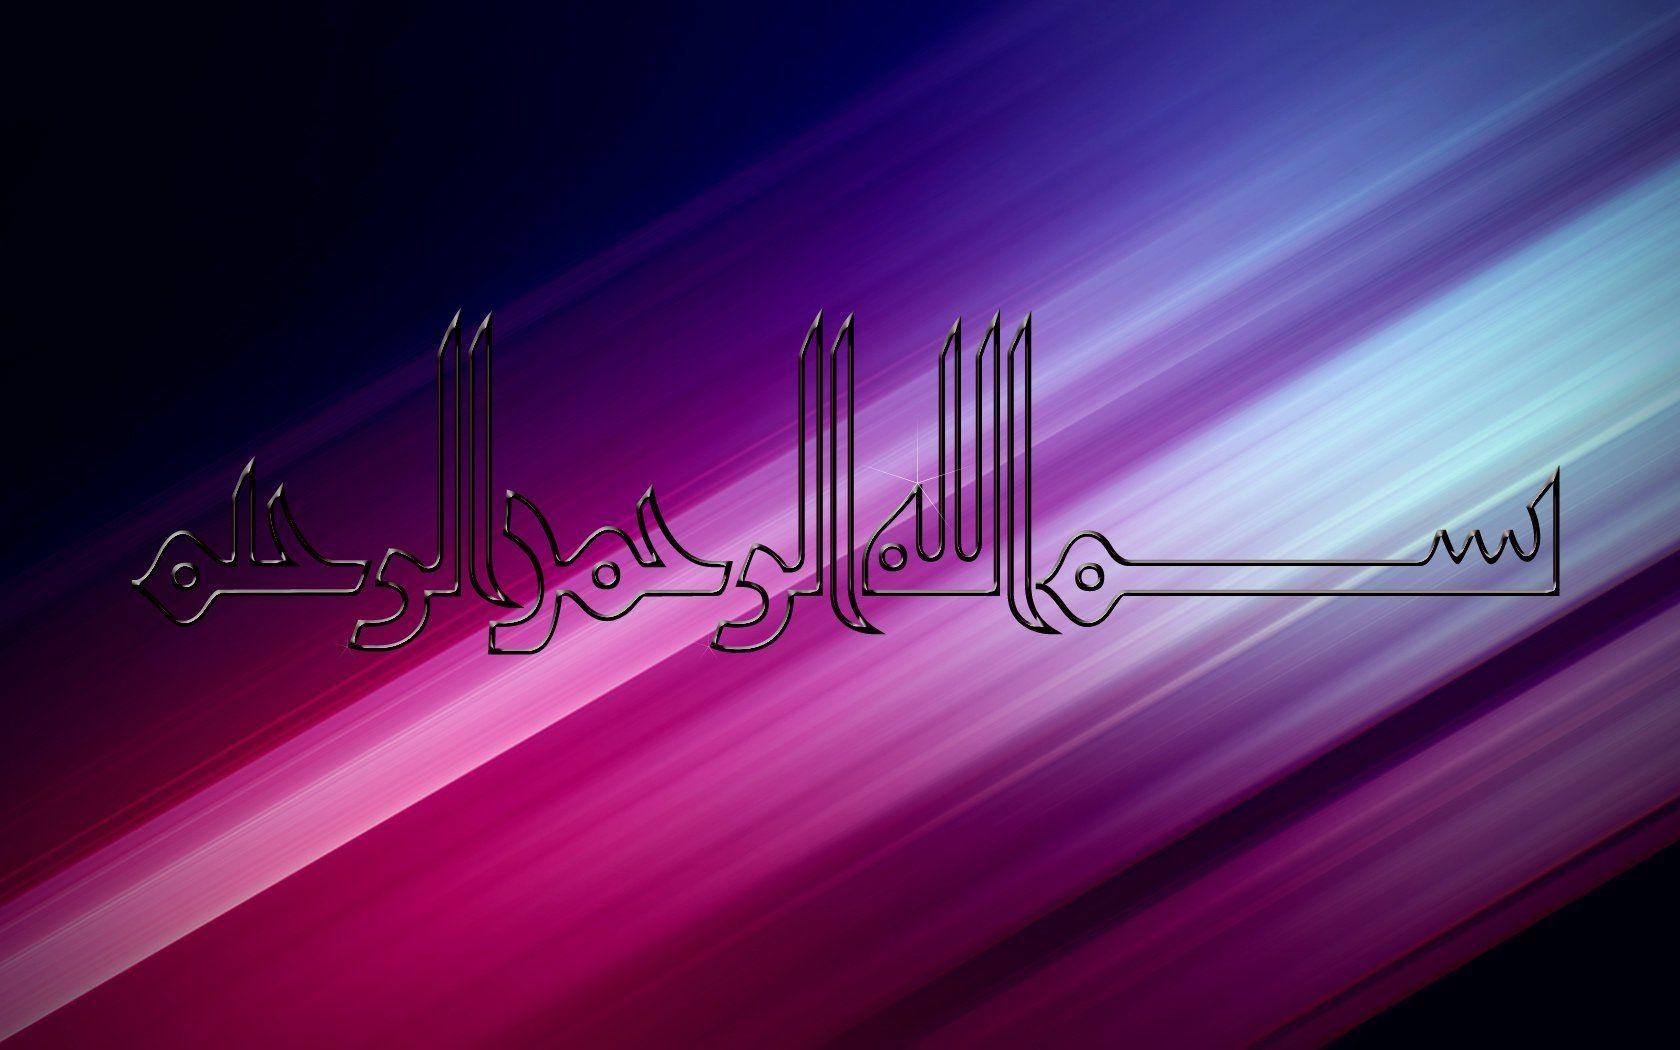 Bism Allah wallpapers | Bism Allah stock photos